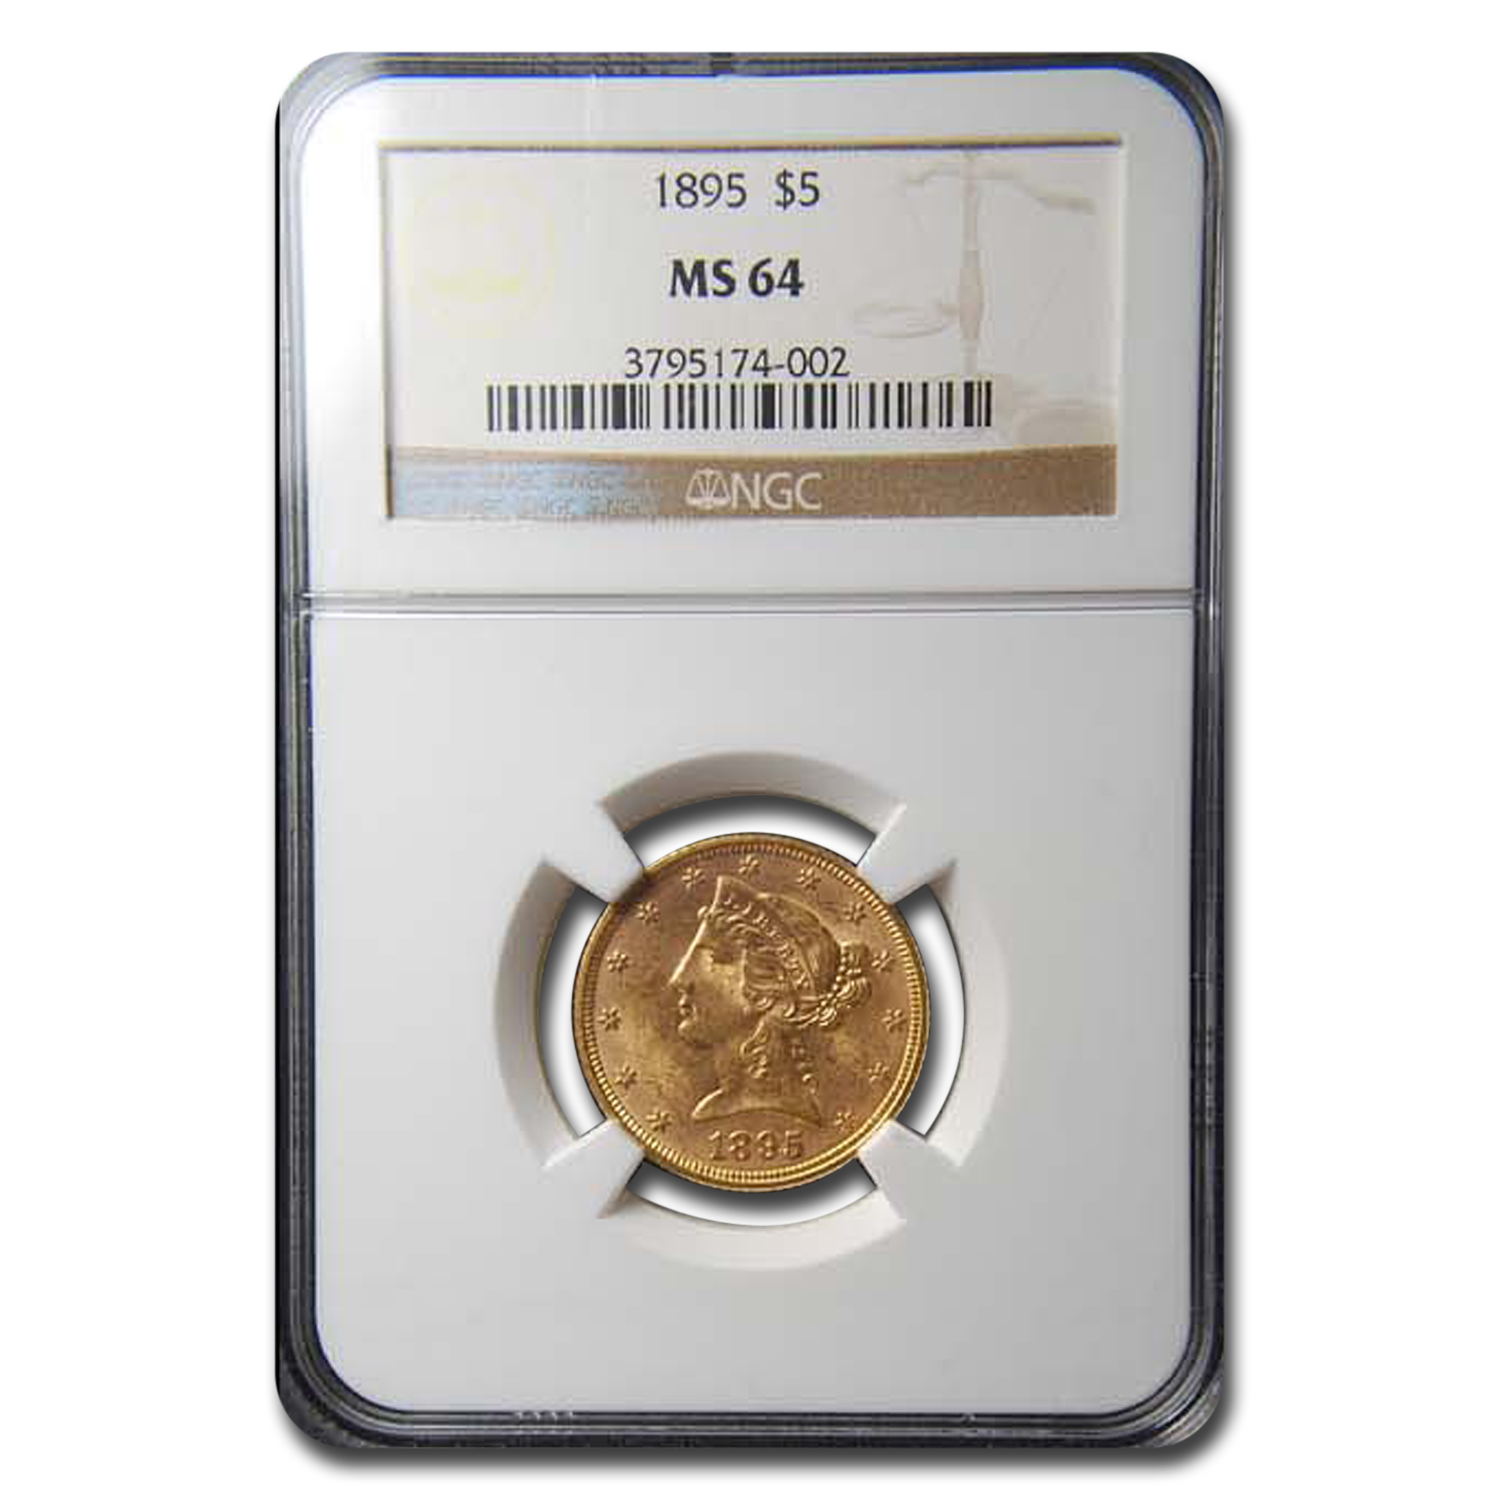 1895 $5 Liberty Gold Half Eagle MS-64 NGC